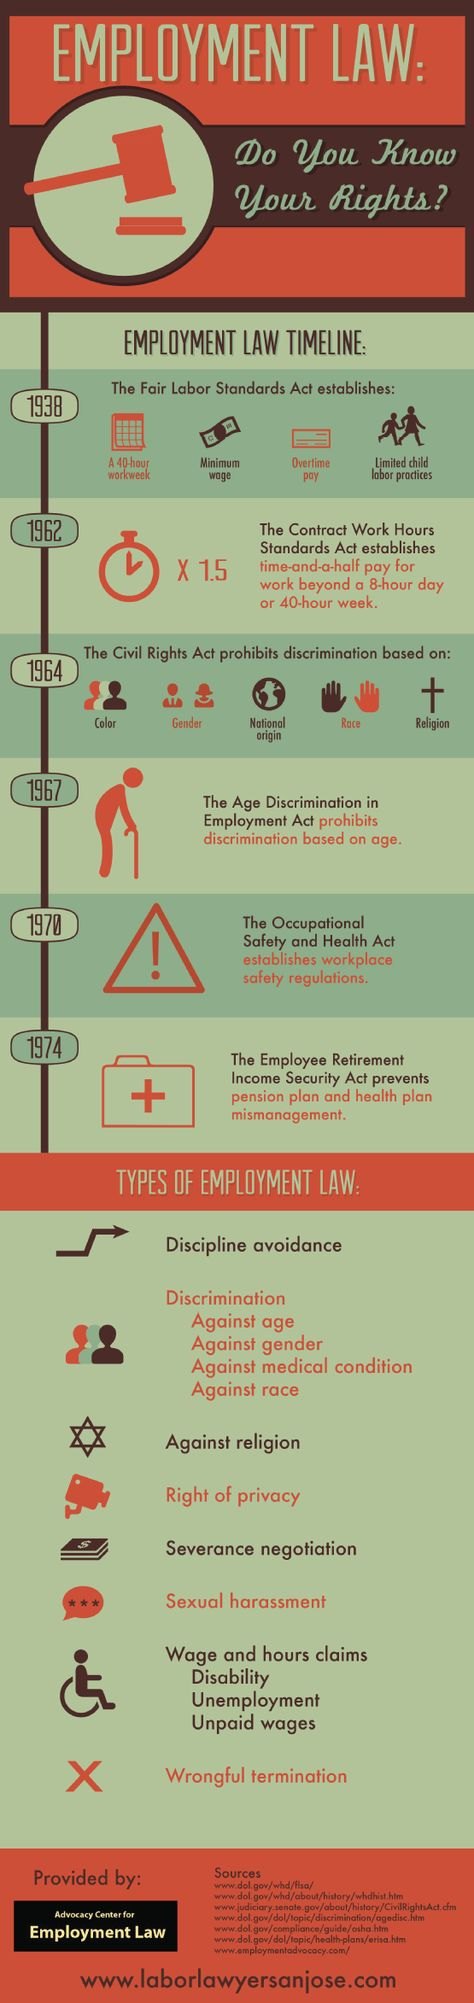 Best Eeoc Images On   Employment Opportunities Equal